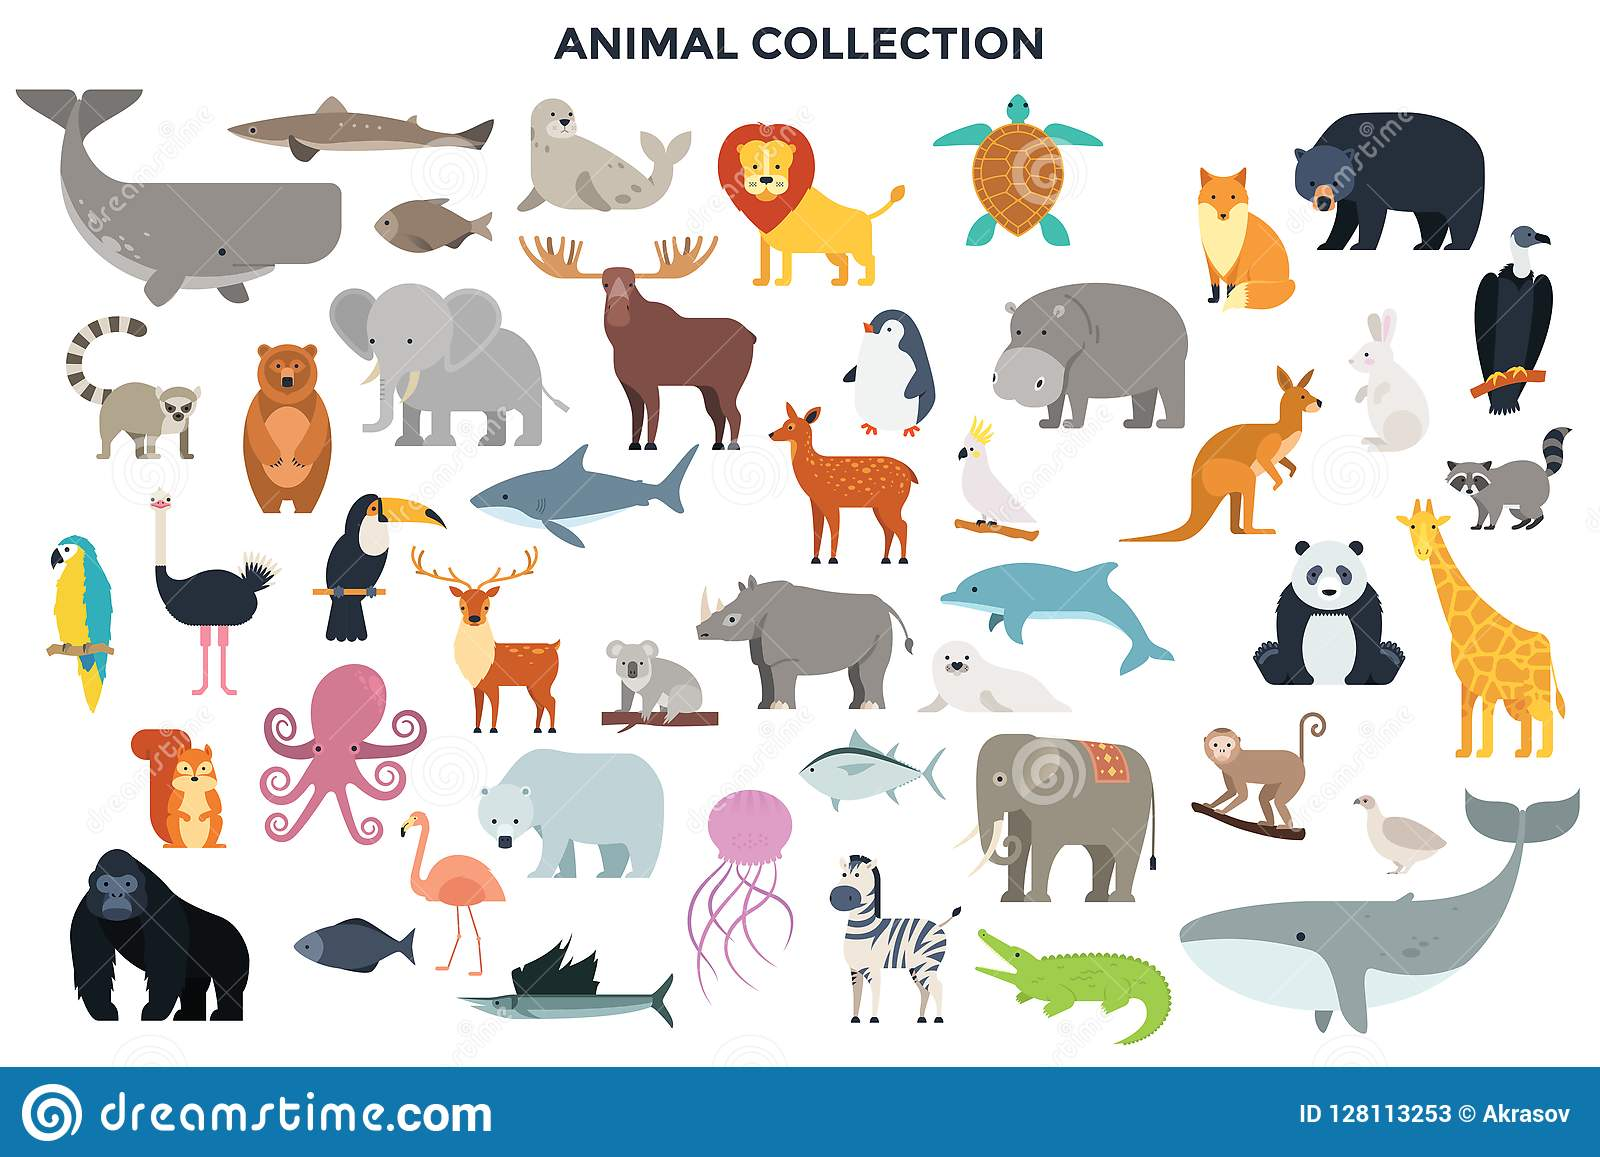 This is one of the most classic rainforest activities. Big Collection Of Wild Jungle Savannah And Forest Animals Birds Marine Mammals Fish Stock Vector Illustration Of Arctic Deer 128113253